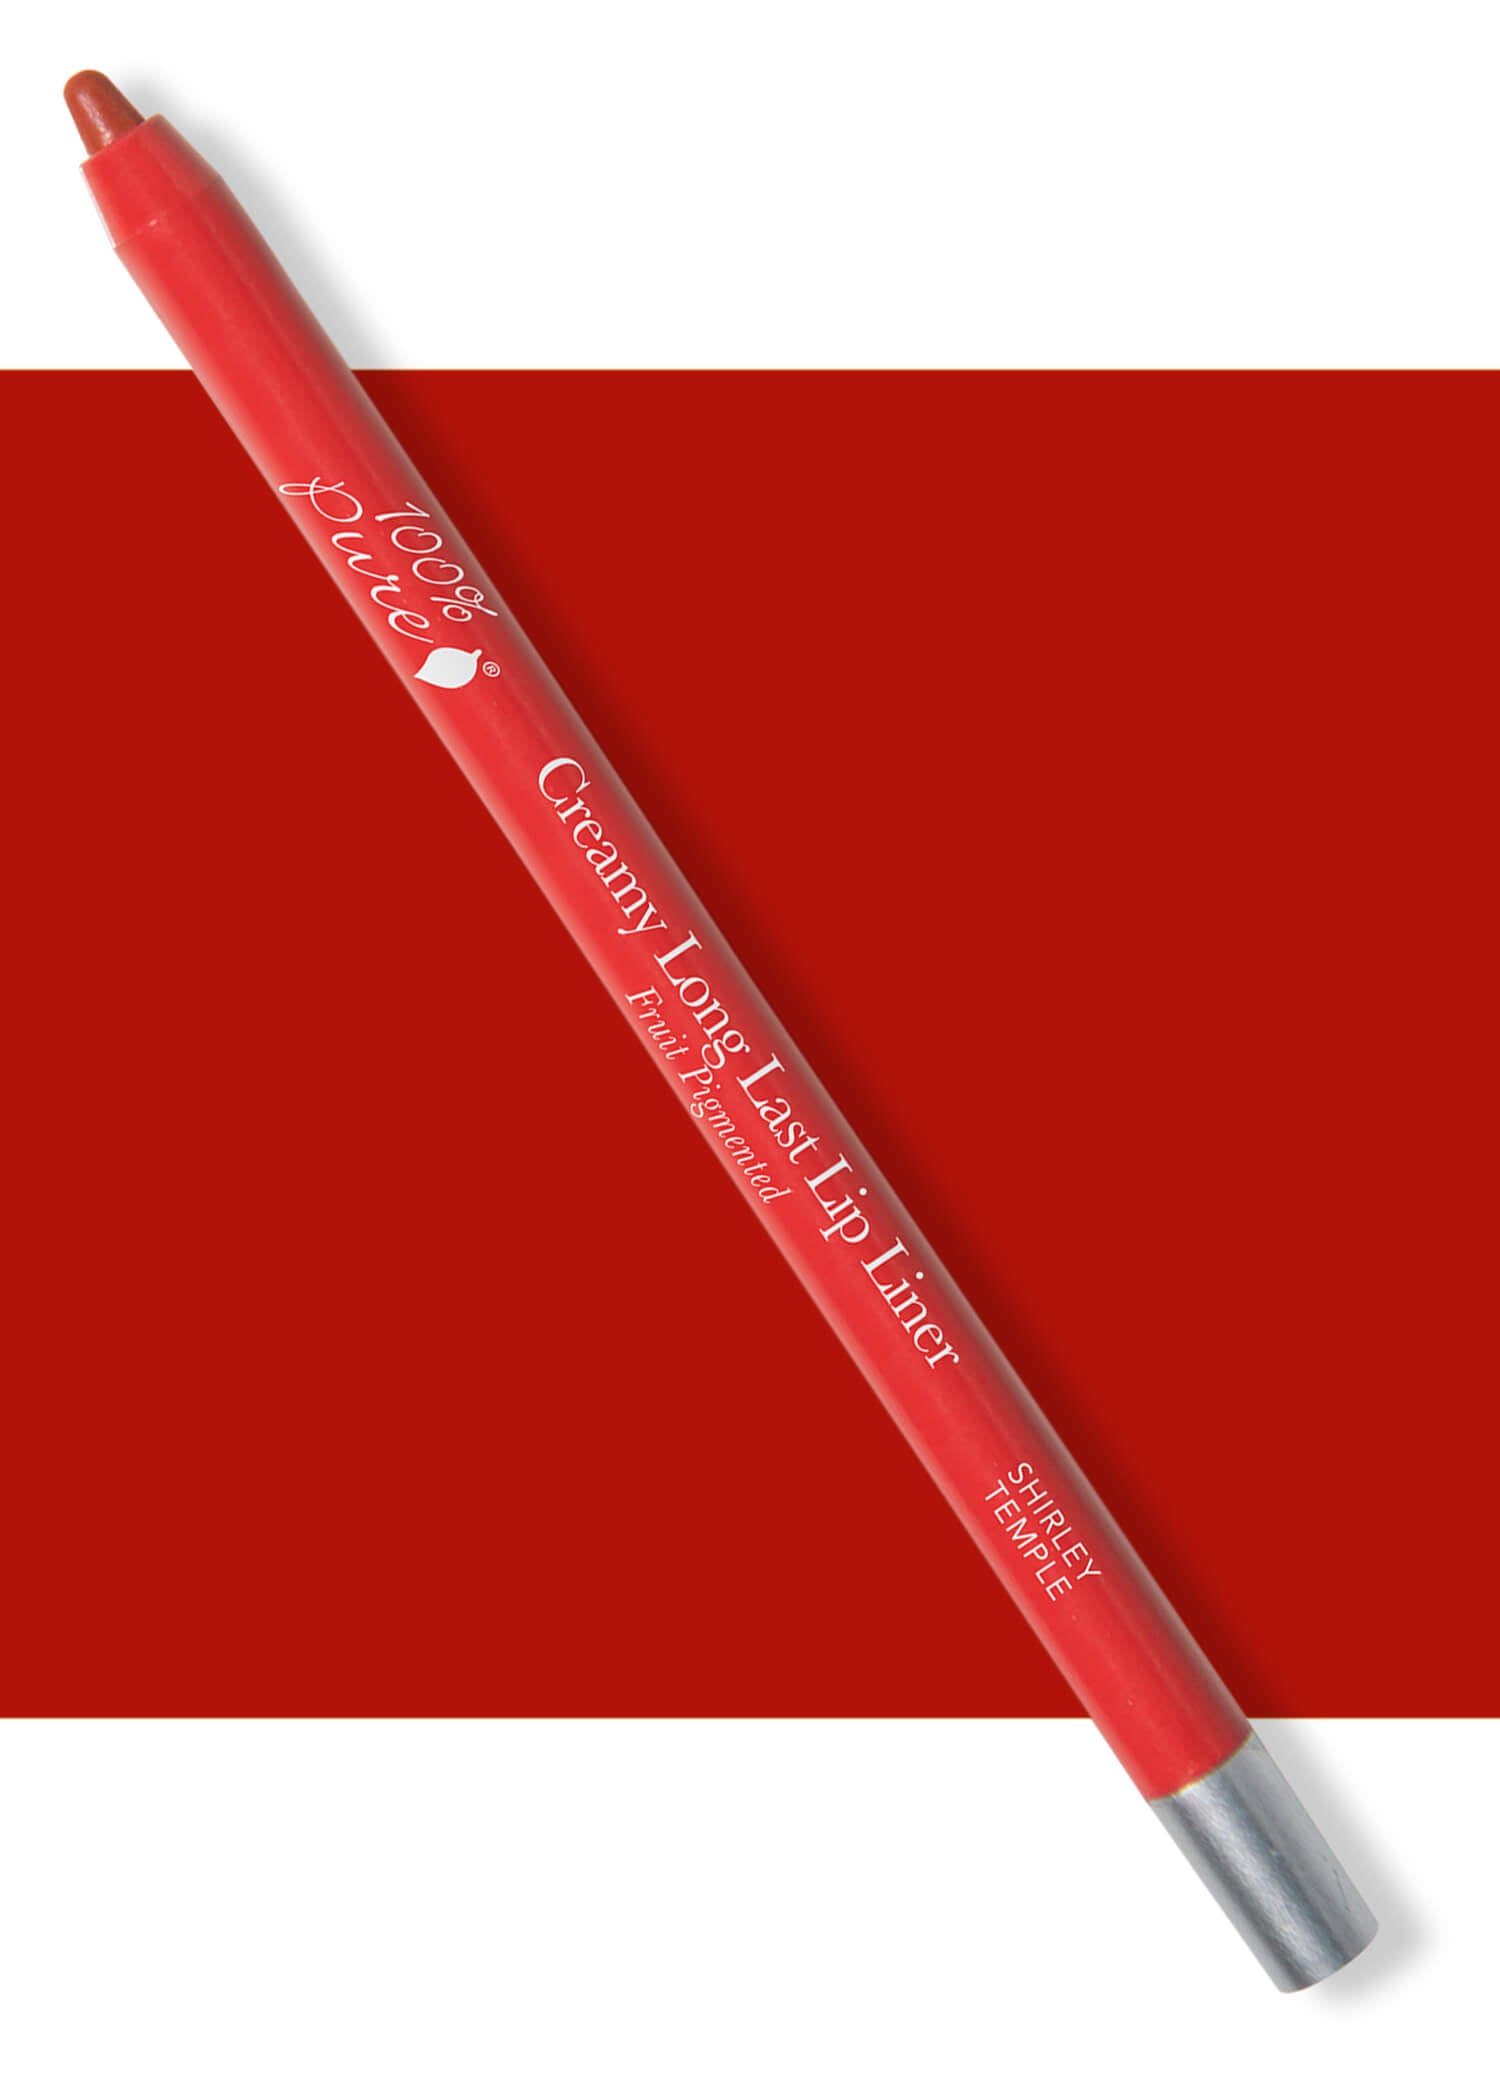 100% PURE Creamy Long Last Lip Liner: Shirley Temple